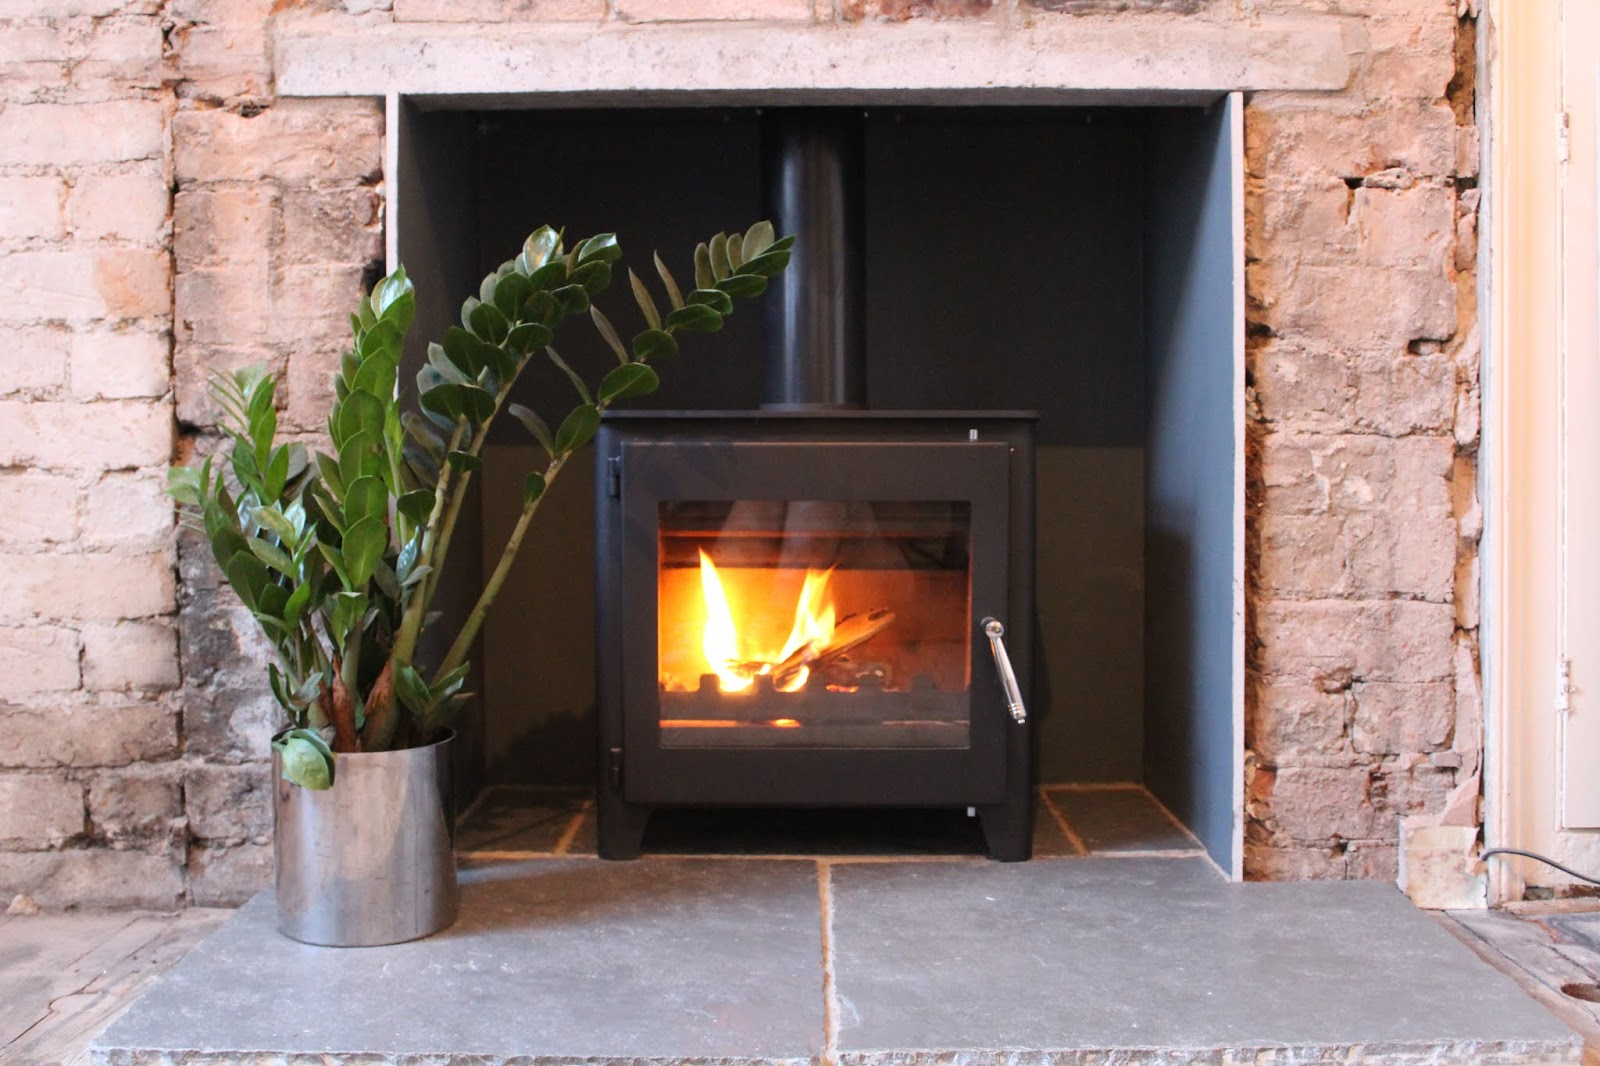 Saltfire ST3 wood burner review